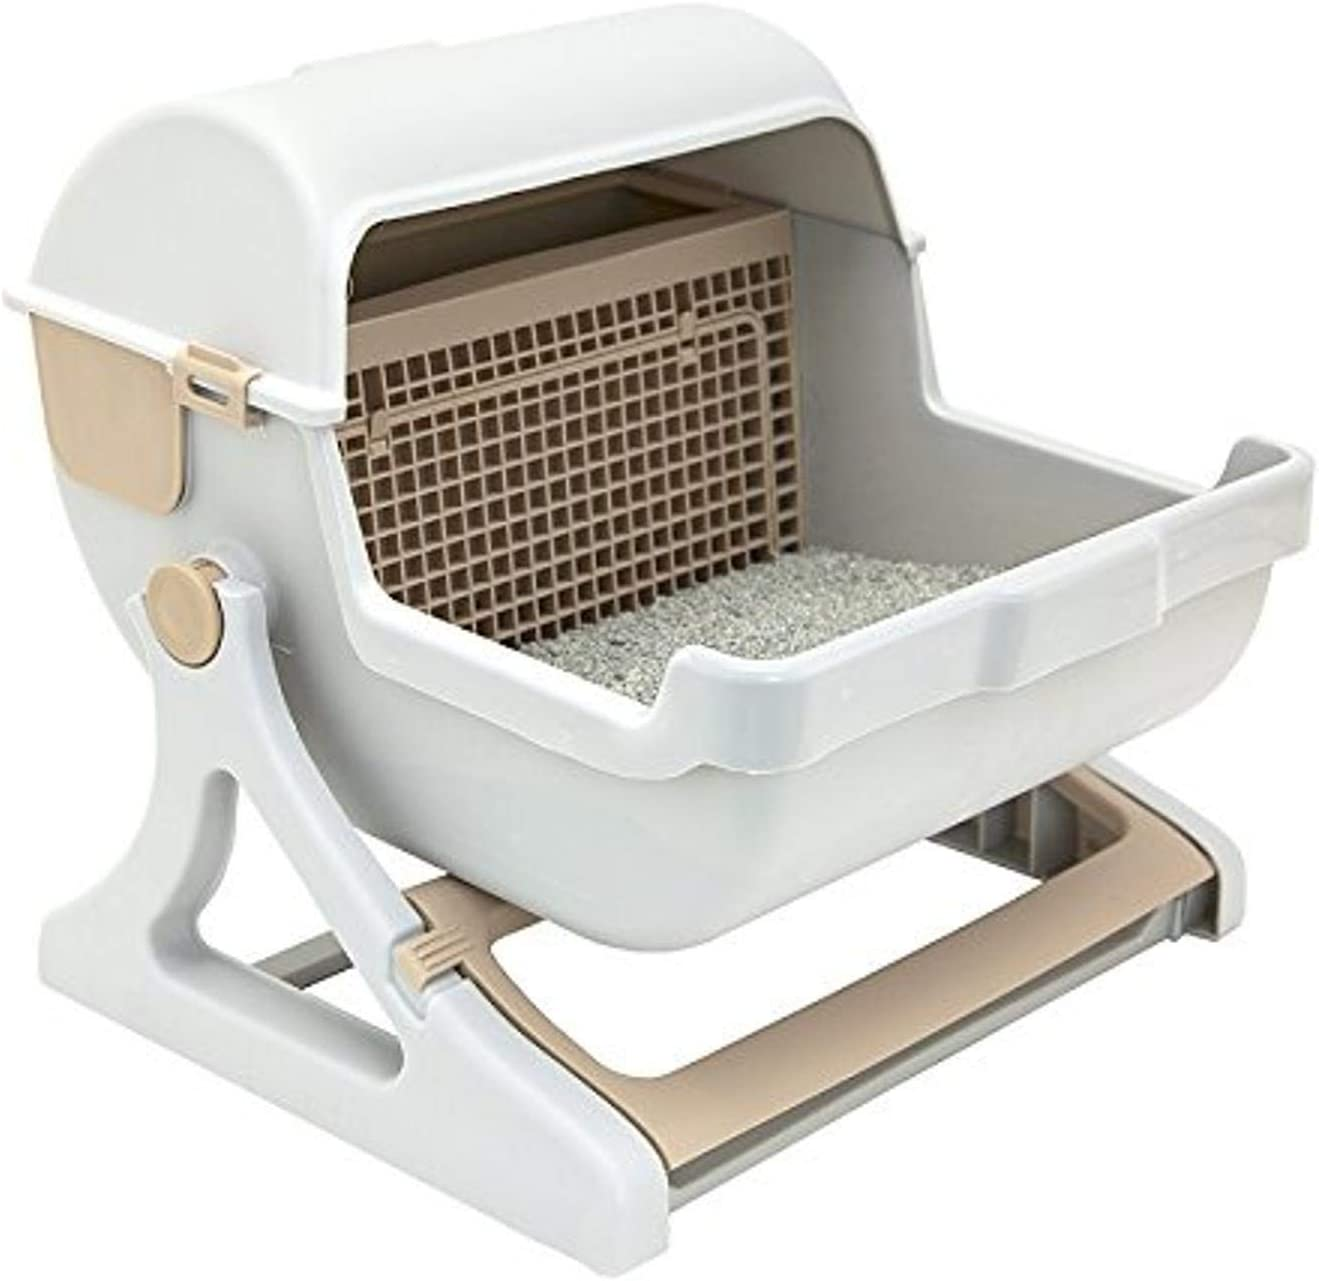 Le you pet semi-automatic Max 83% Phoenix Mall OFF quick cleaning litter Luxury box cat